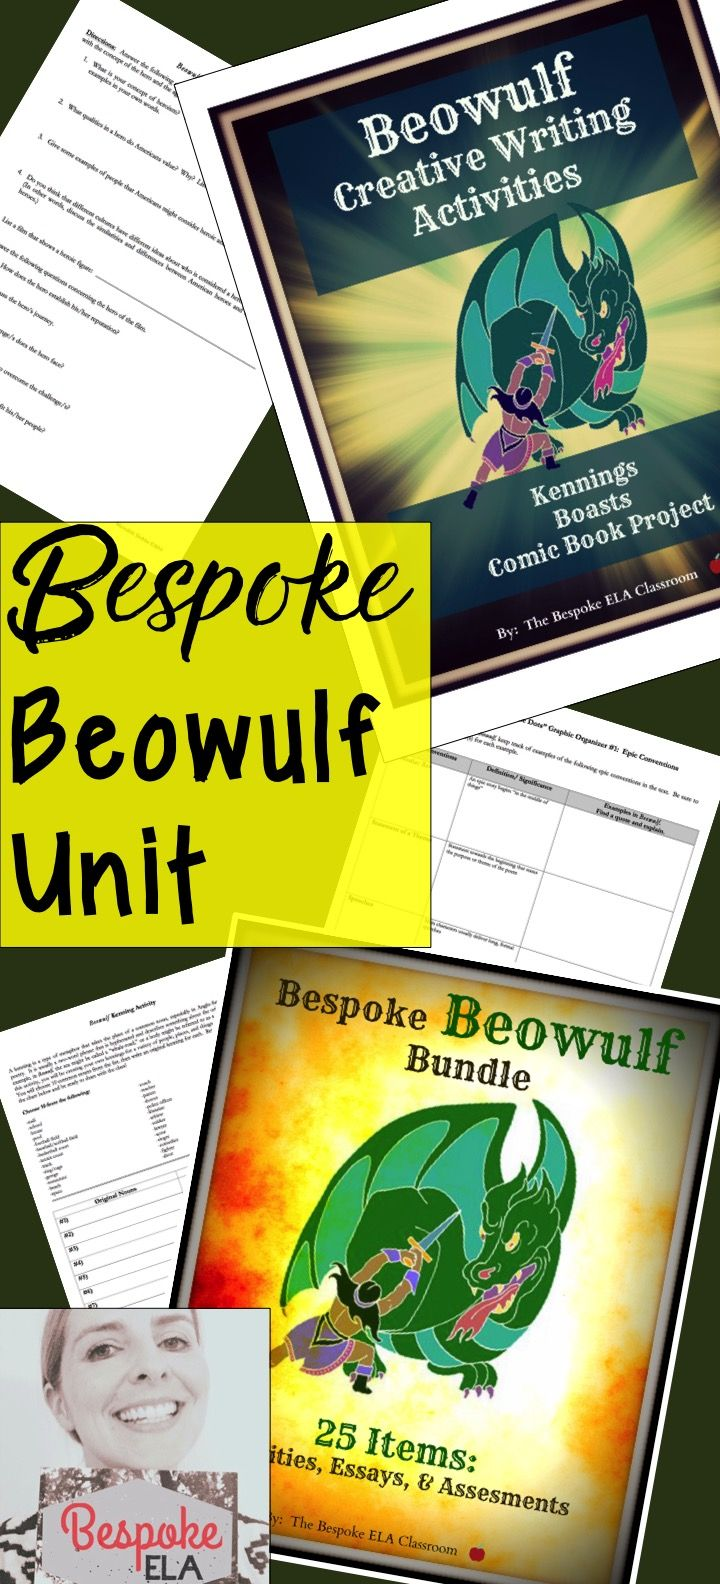 17 best ideas about sample essay argumentative in this mega beowulf bundle by bespoke ela you will 25 lessons and activities